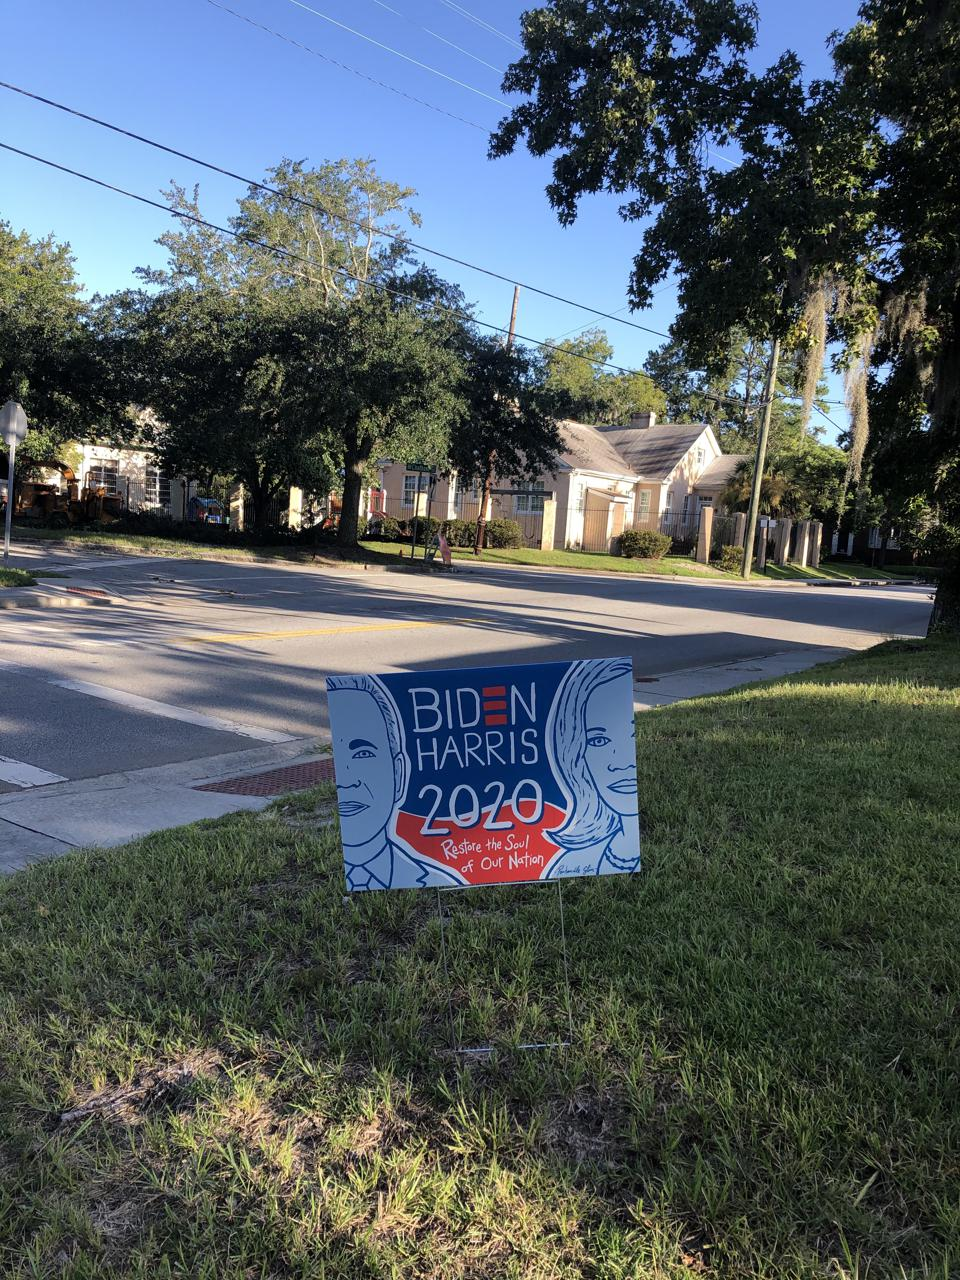 A sign by Panhandle Slim in Savannah, Georgia, for the 2020 Presidential election.